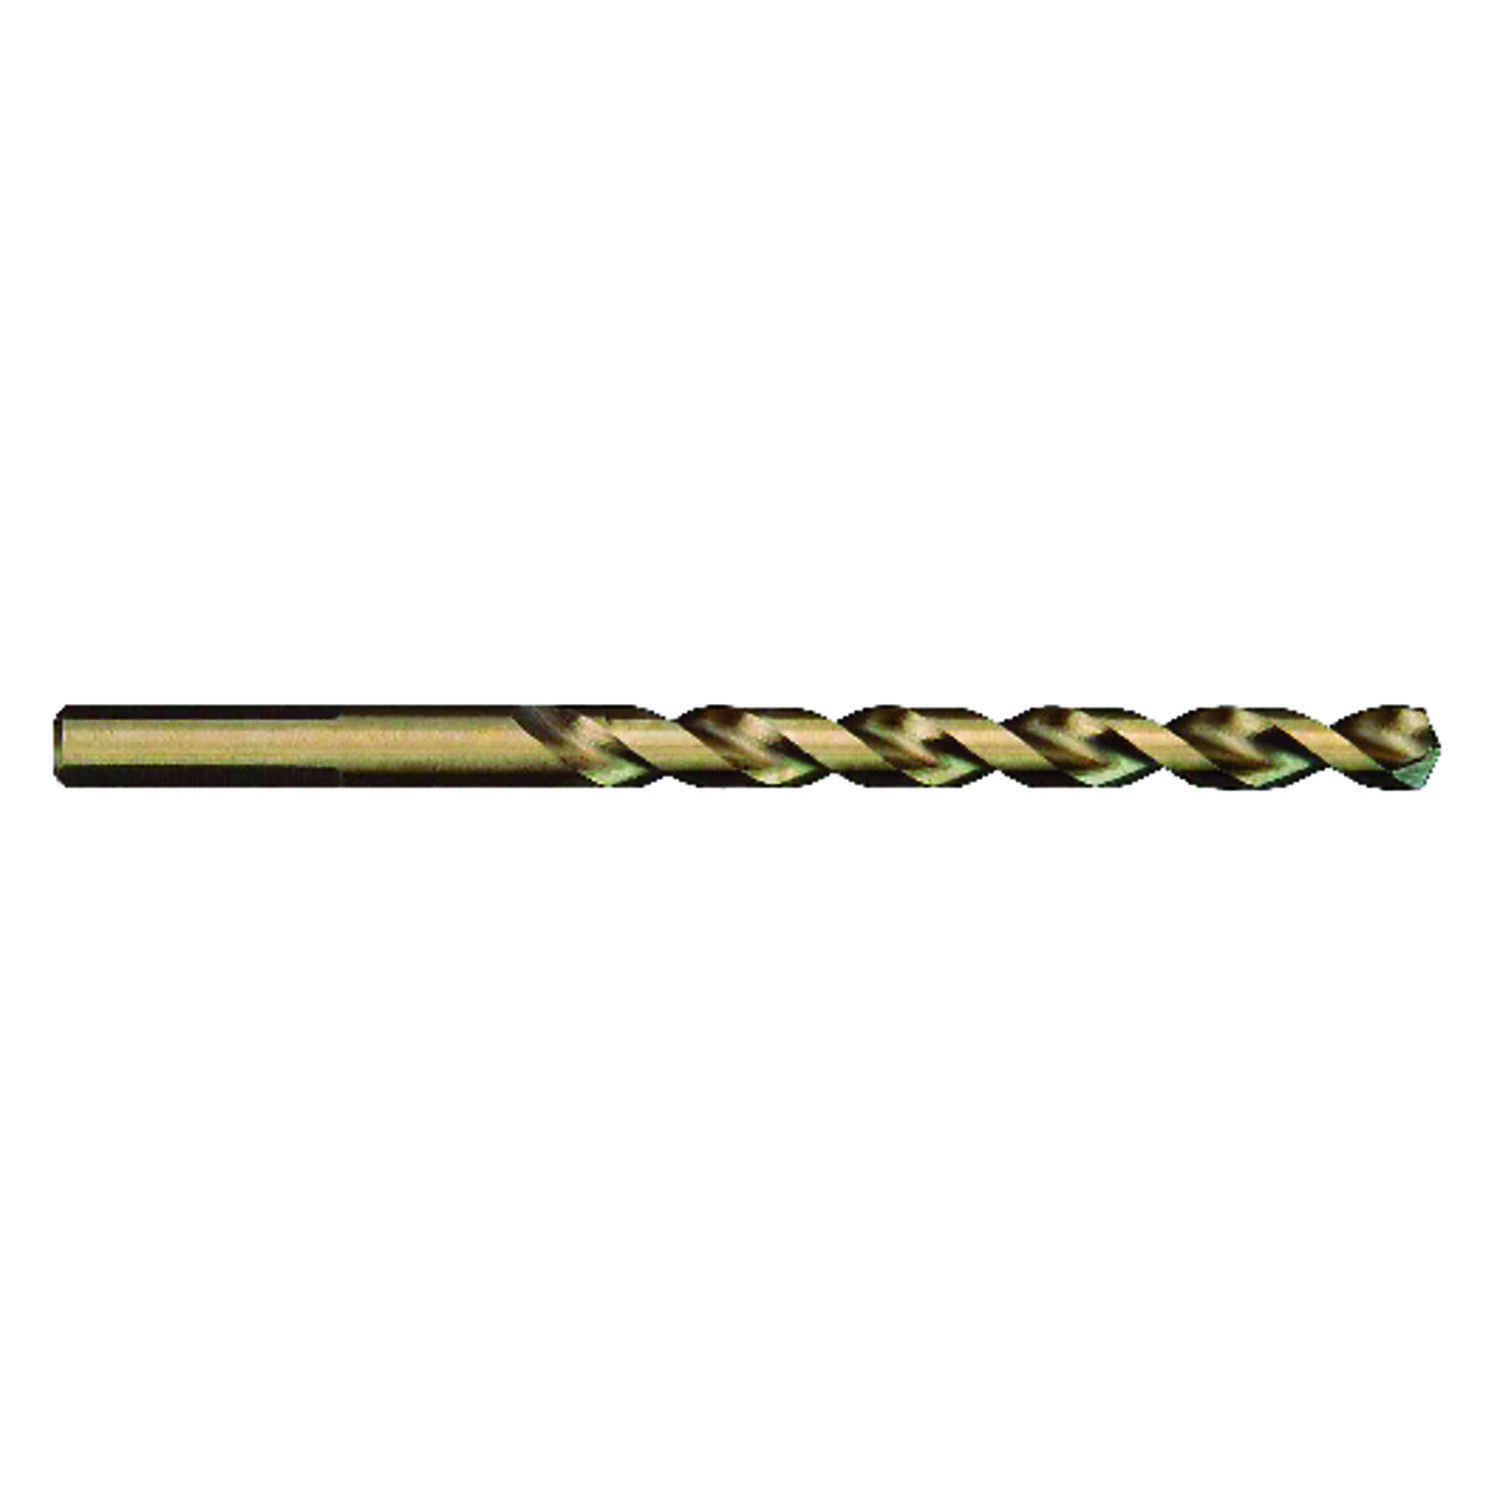 Milwaukee  RED HELIX  7/16 in. Dia. x 5 in. L Cobalt Steel  THUNDERBOLT  3-Flat Shank  1 pc. Drill B